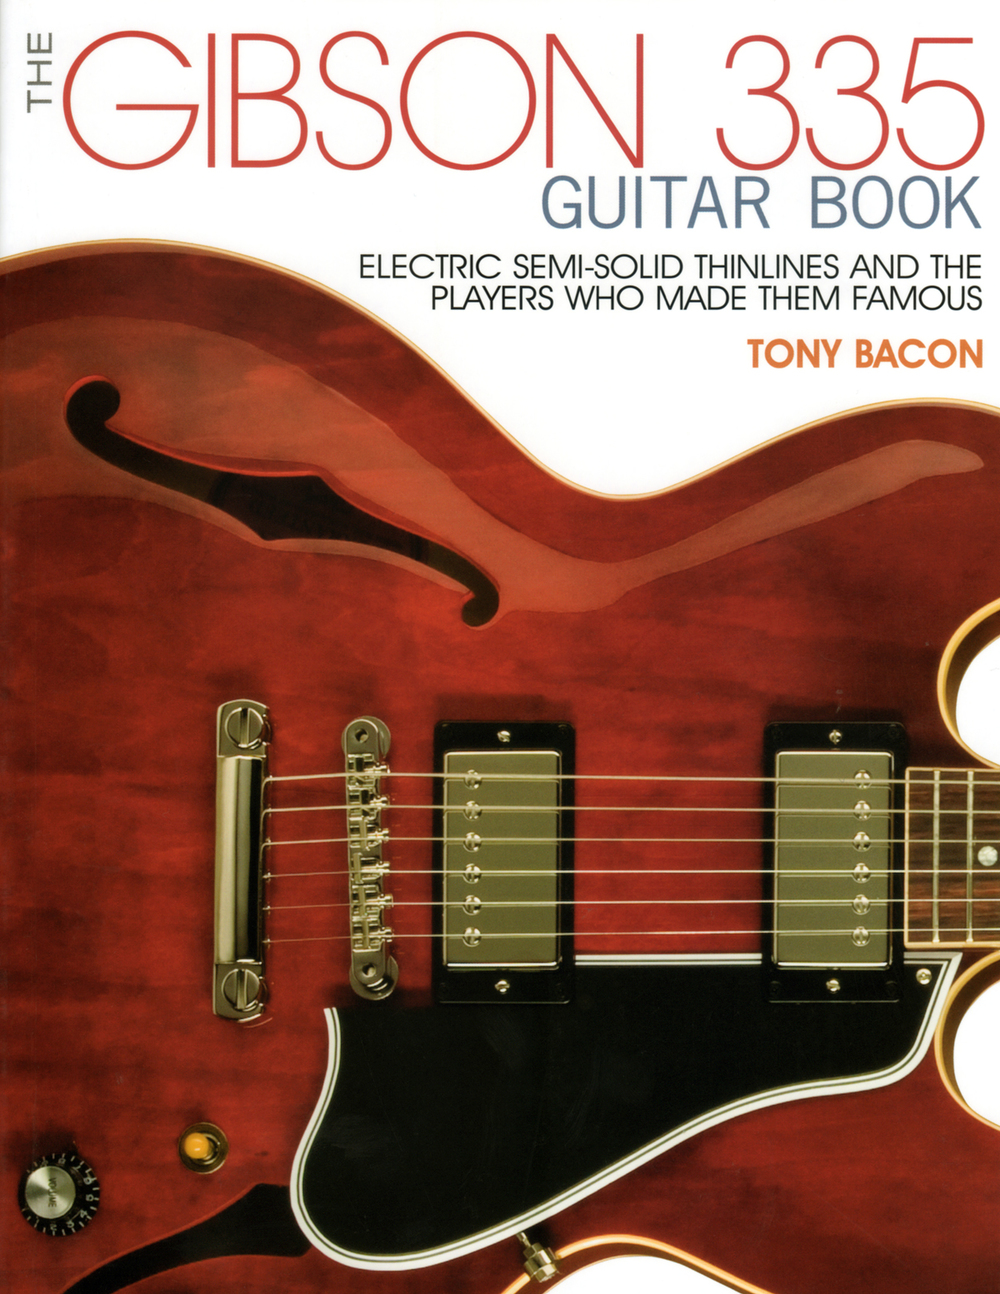 The Gibson 335 Guitar Book: Electric Semi-Solid...